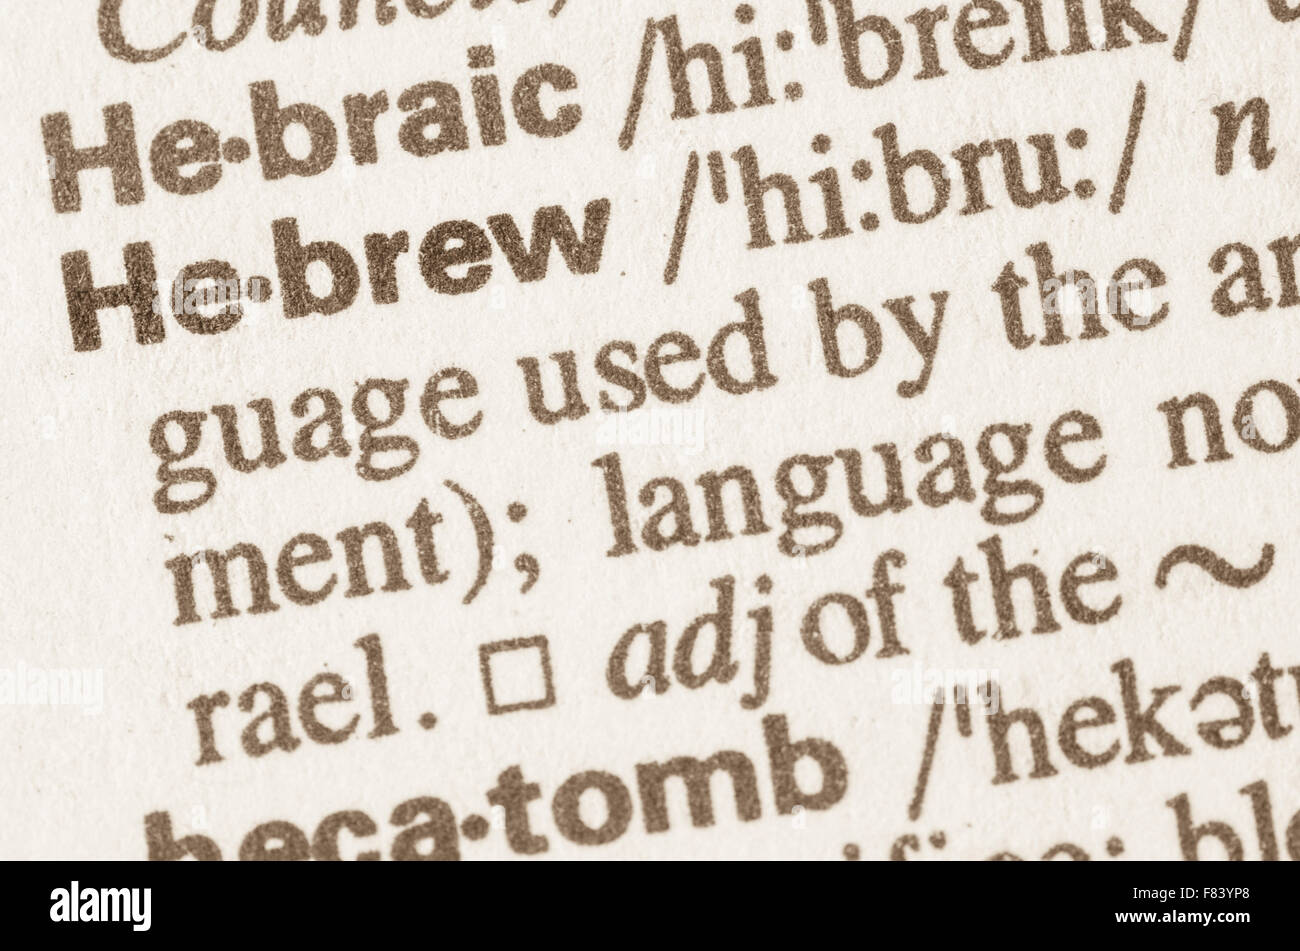 Definition of word Hebrew  in dictionary - Stock Image